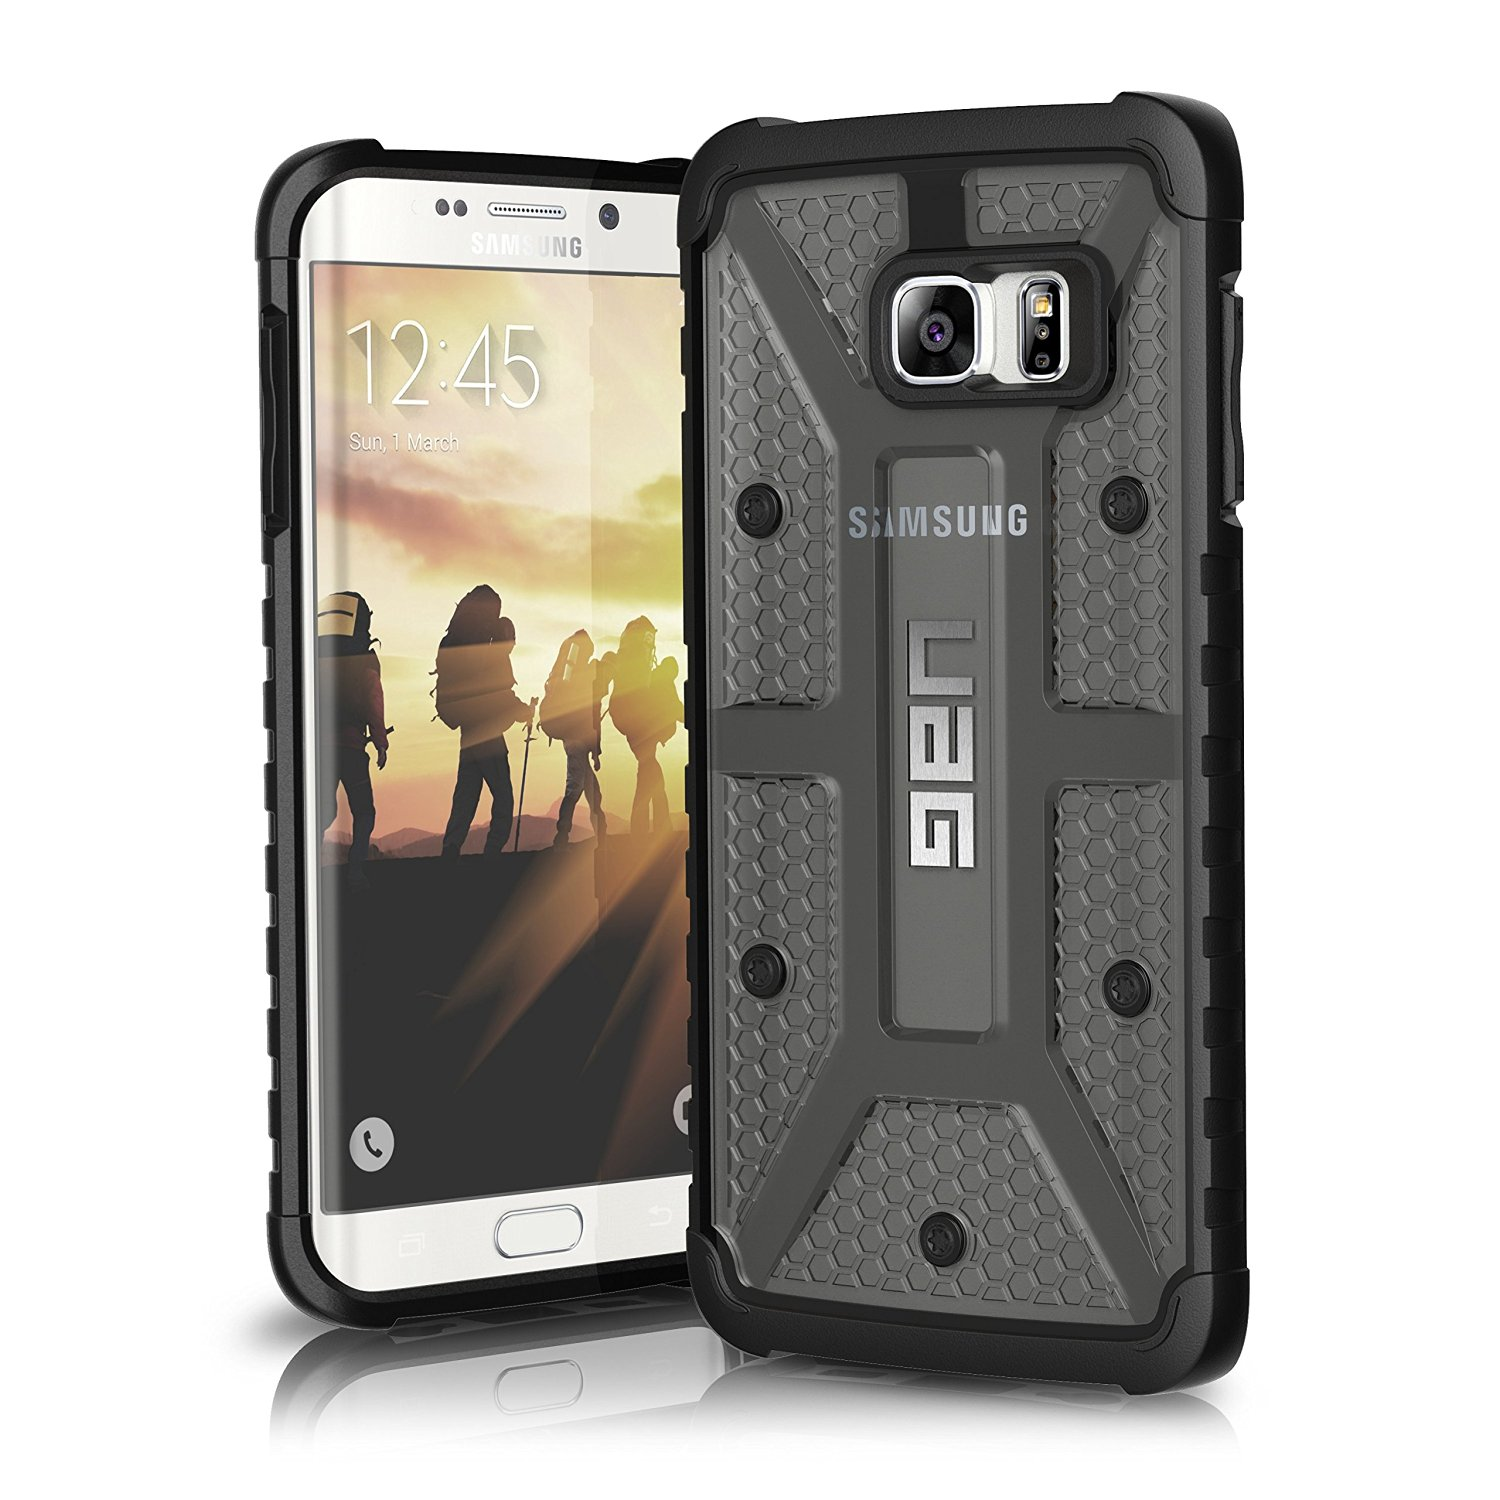 UAG Θήκη Feather-Light Composite Samsung Galaxy S6 Edge Plus - Ash/Black (8451)